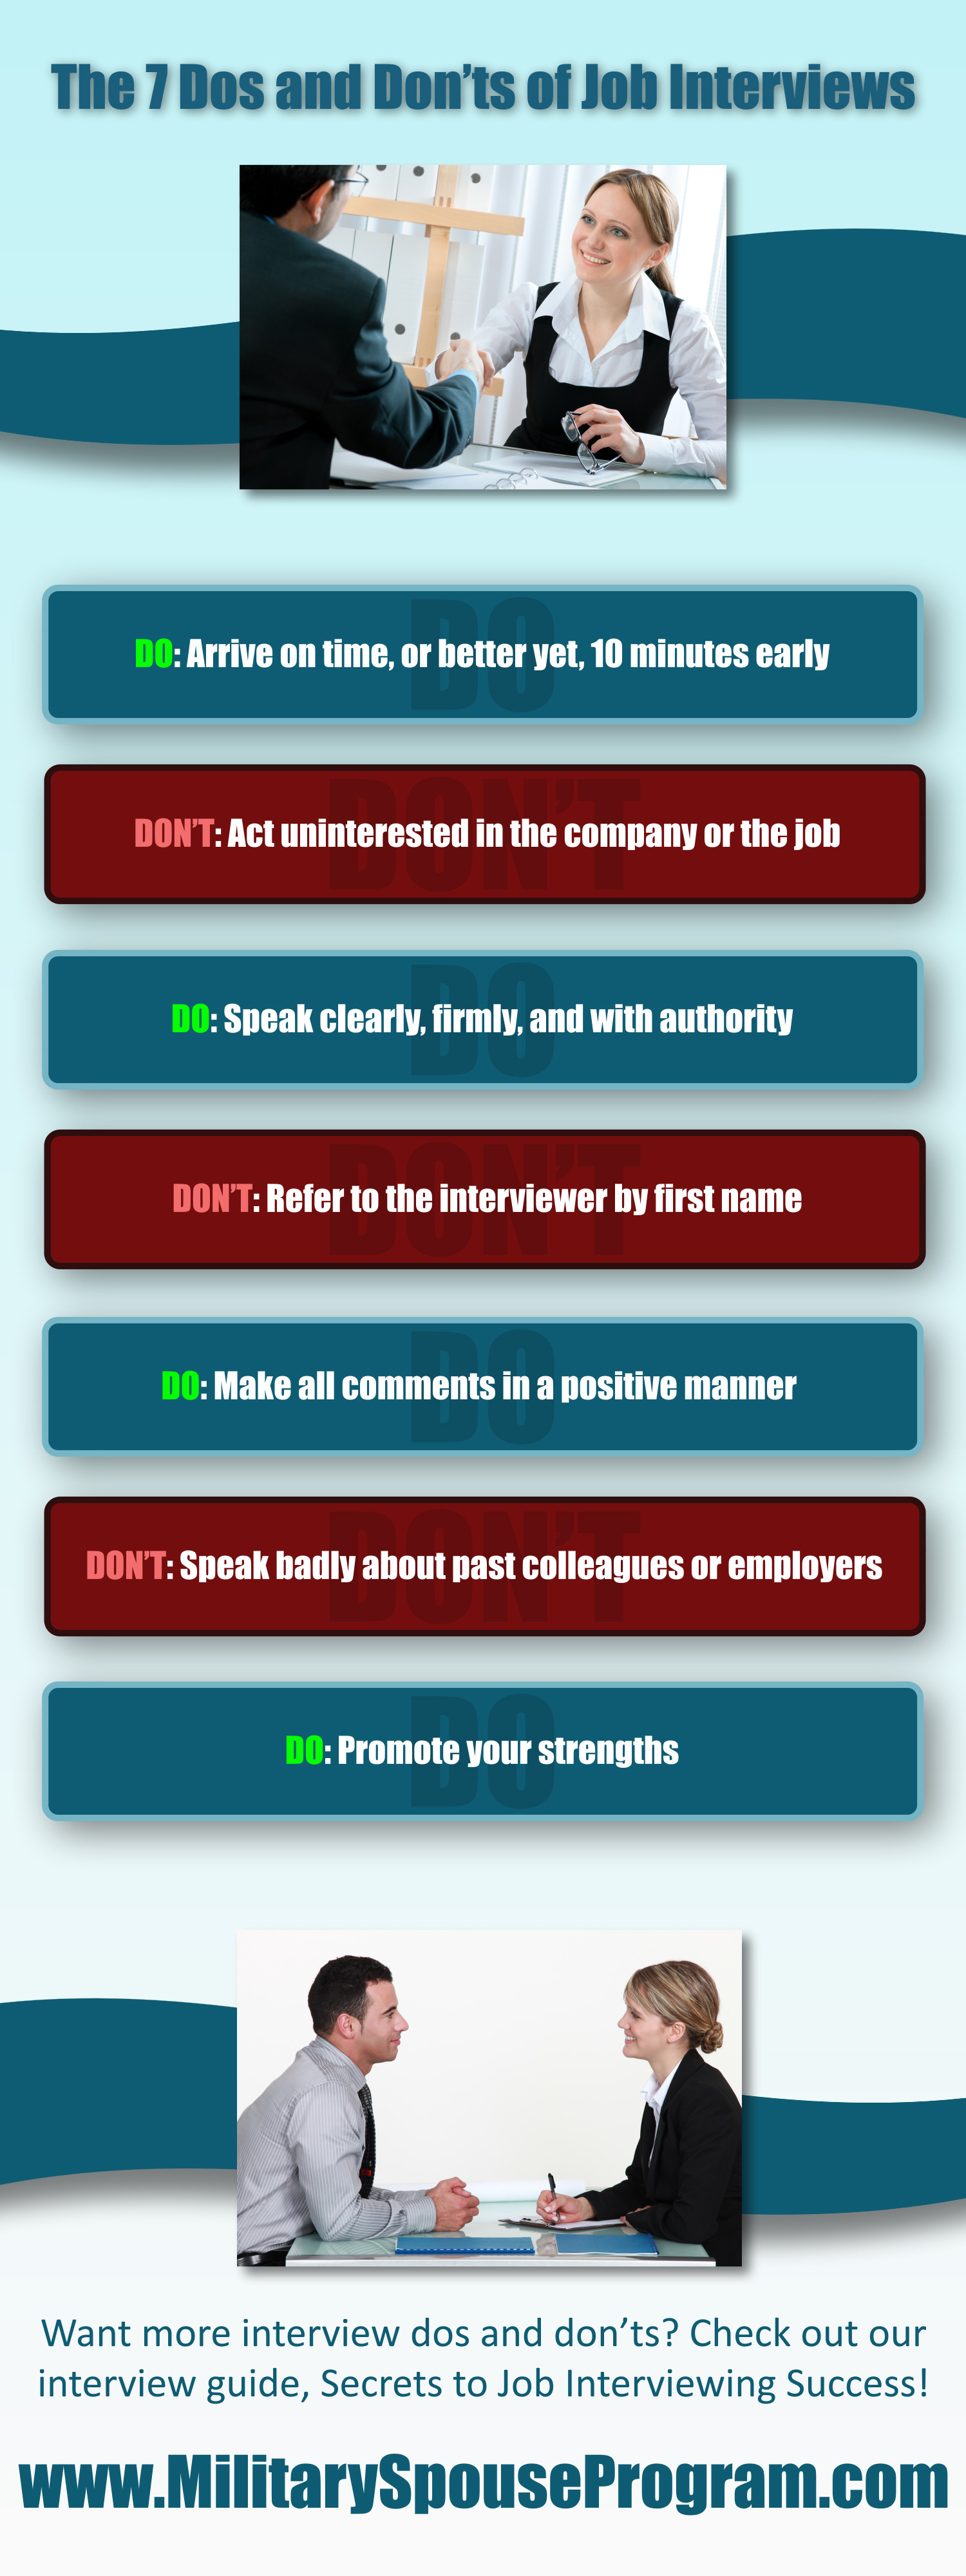 7 dos and don ts of job interviews visual ly 7 dos and don ts of job interviews infographic